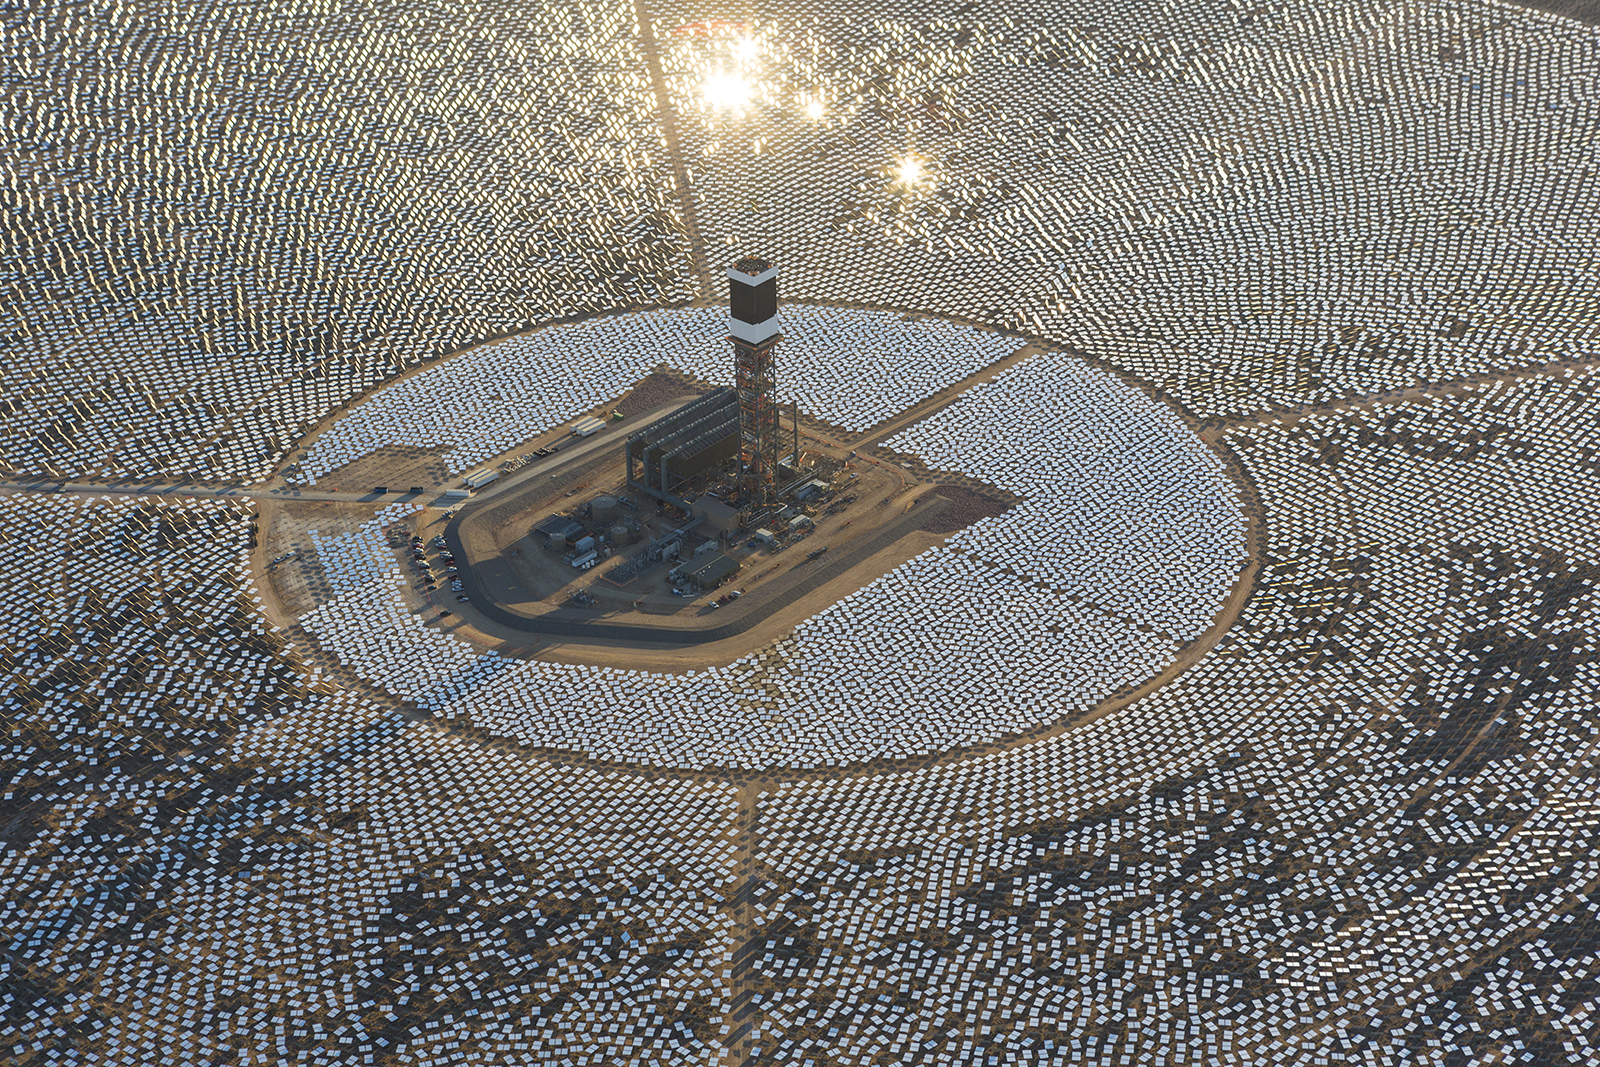 The Ivanpah Solar Power Facility in the Mojave Desert. Conceived in 2008 and backed by the state of California and Google, among others, Ivanpah is the world's largest concentrated solar-thermal powerplant. This typeof plantuses giant mirrors to concentrate light that heats water to power turbines. Since 2008, the price of photovoltaics (solar panels) has fallen so dramatically thatmost renewable-energy authorities, including Google, no longer believe that solar-thermalplants are practical. According to a recent AP report, Ivanpah is currently producing at just 50 percentof itscapacity.  Photo: BrightSource Energy